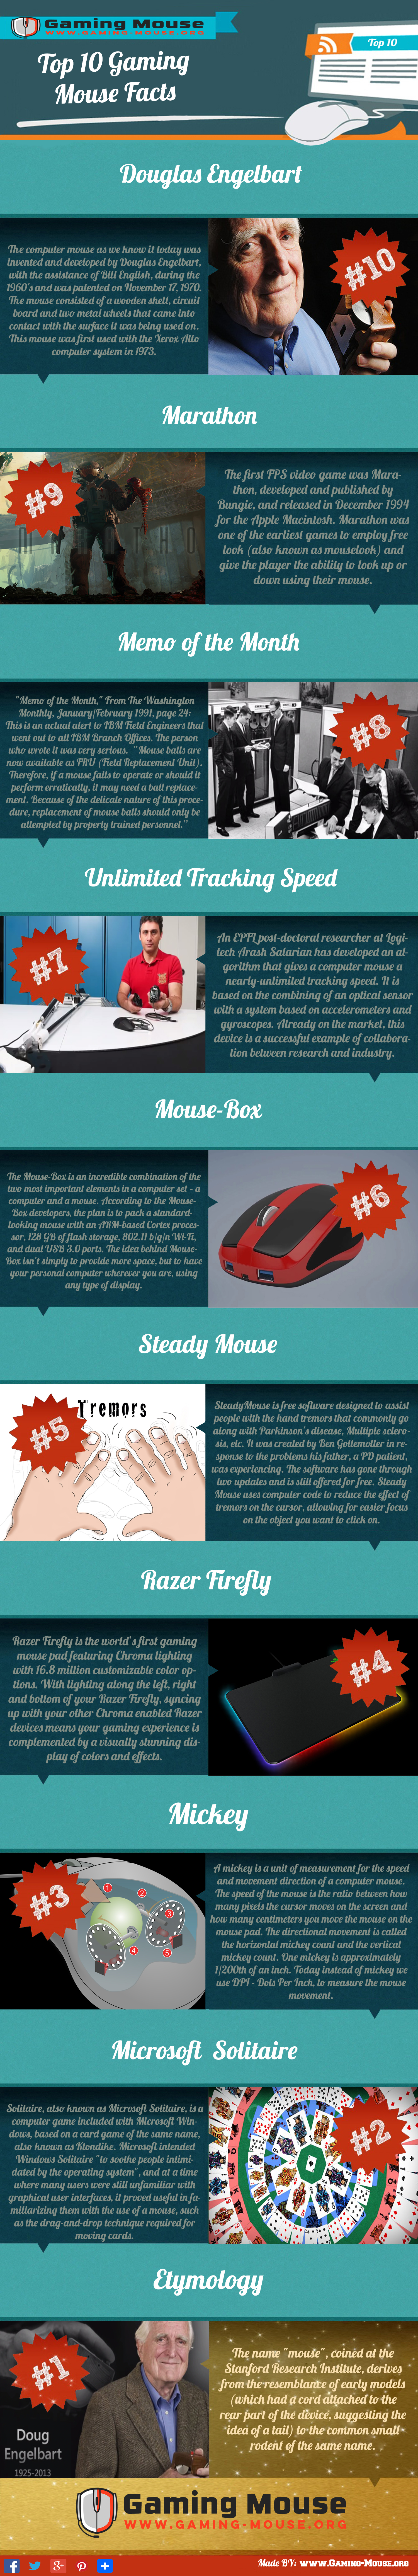 Top-10-Gaming-Mouse-Facts (1)